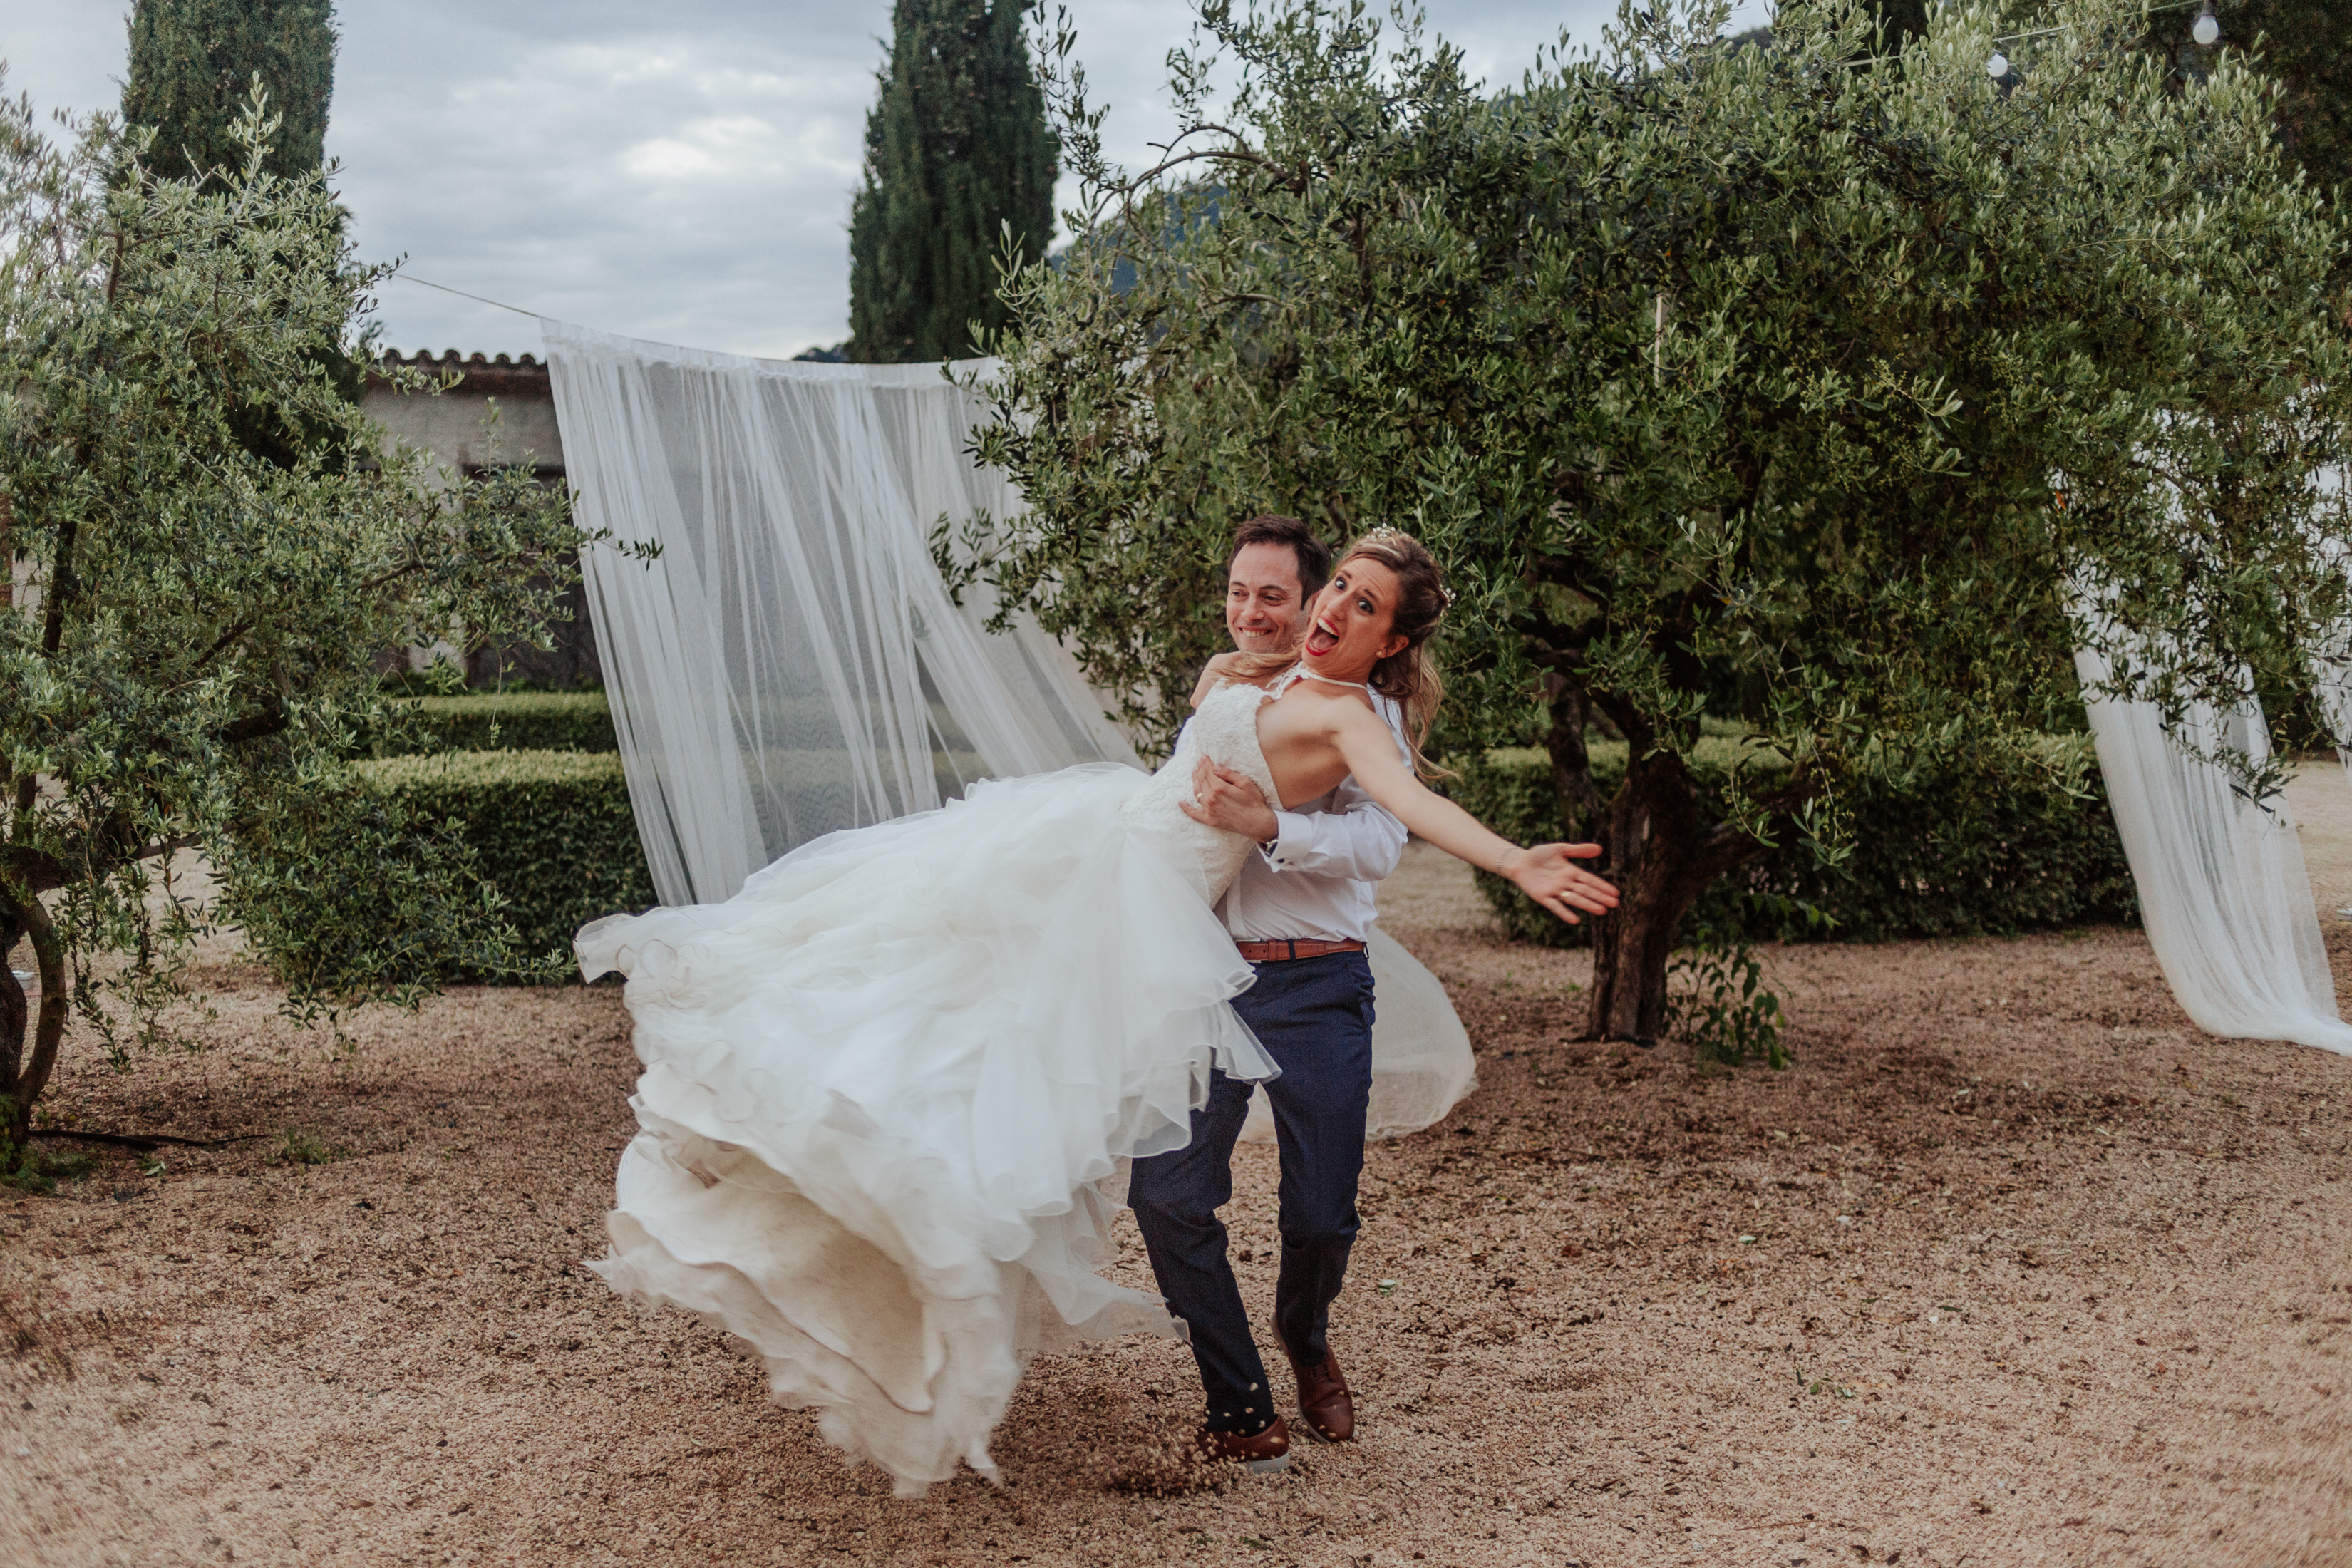 fotógrafo de bodas :: fotógrafo de bodas Barcelona :: Boda en Can Carol :: boda en el campo :: boda natural :: boda en masía :: country wedding :: barcelona wedding photographer